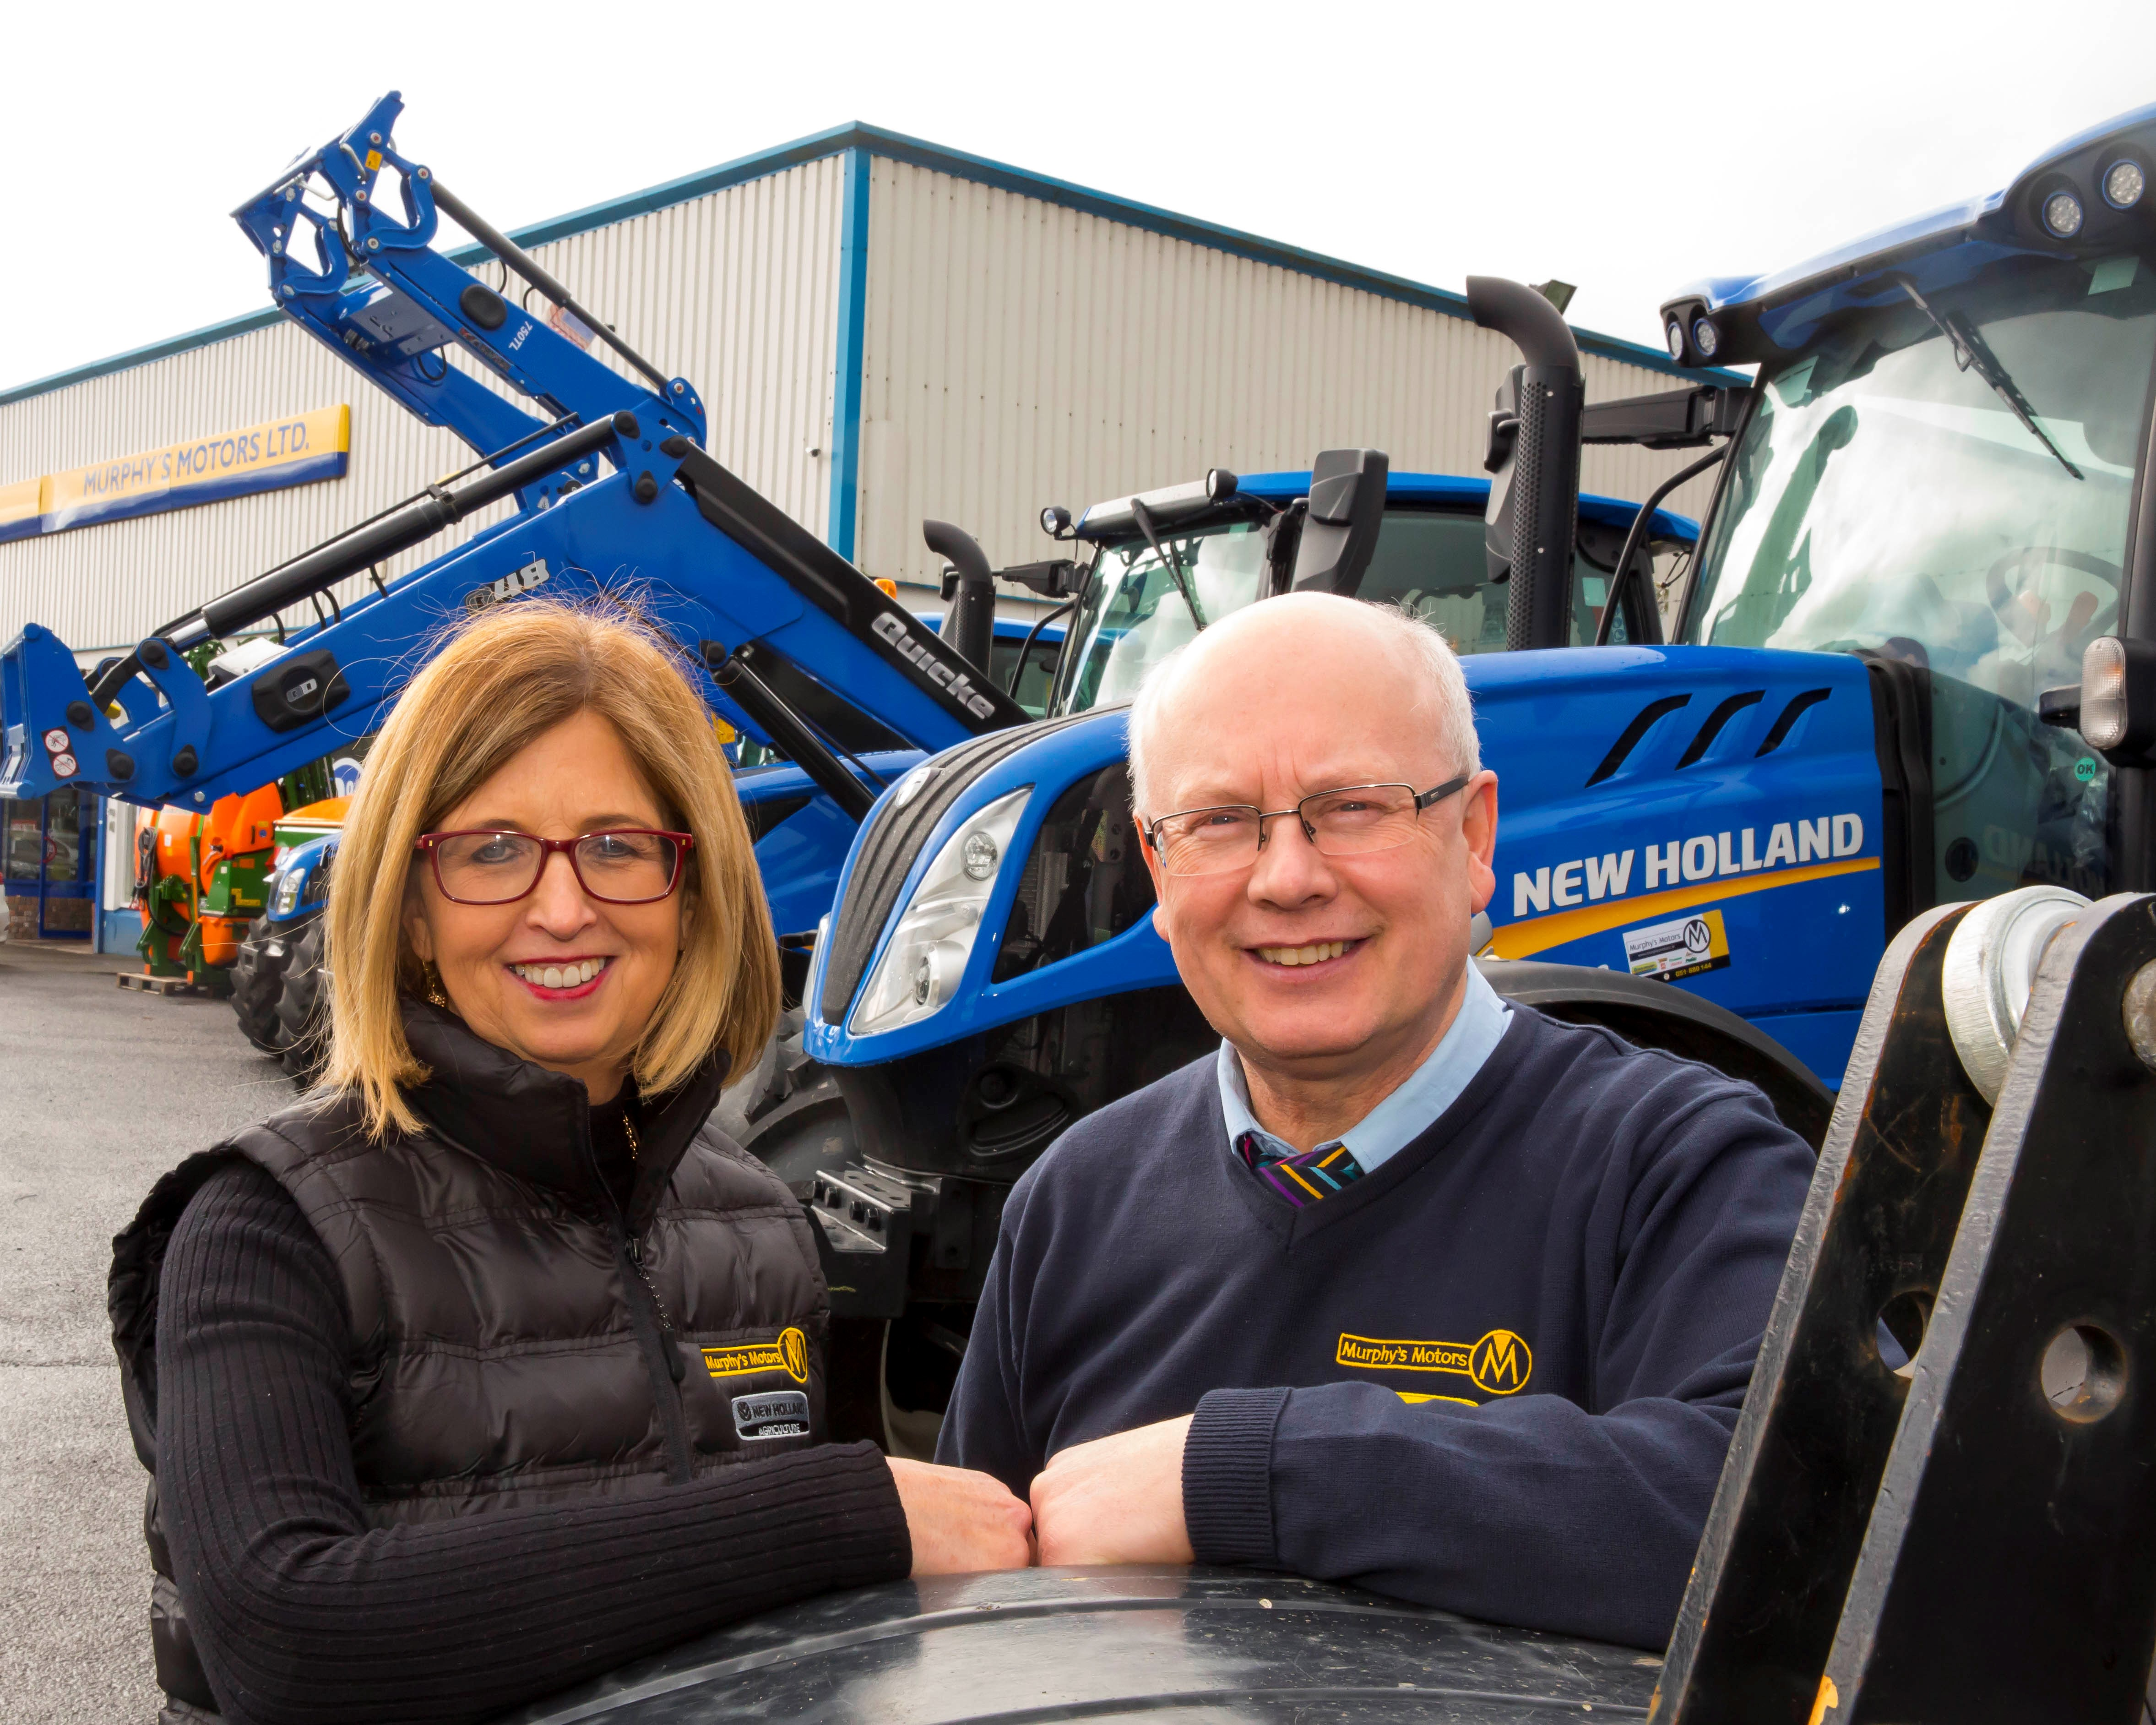 We, Dick and Bernie, are the third generation of the Murphy family to be involved in running the family business, originally established in 1960.